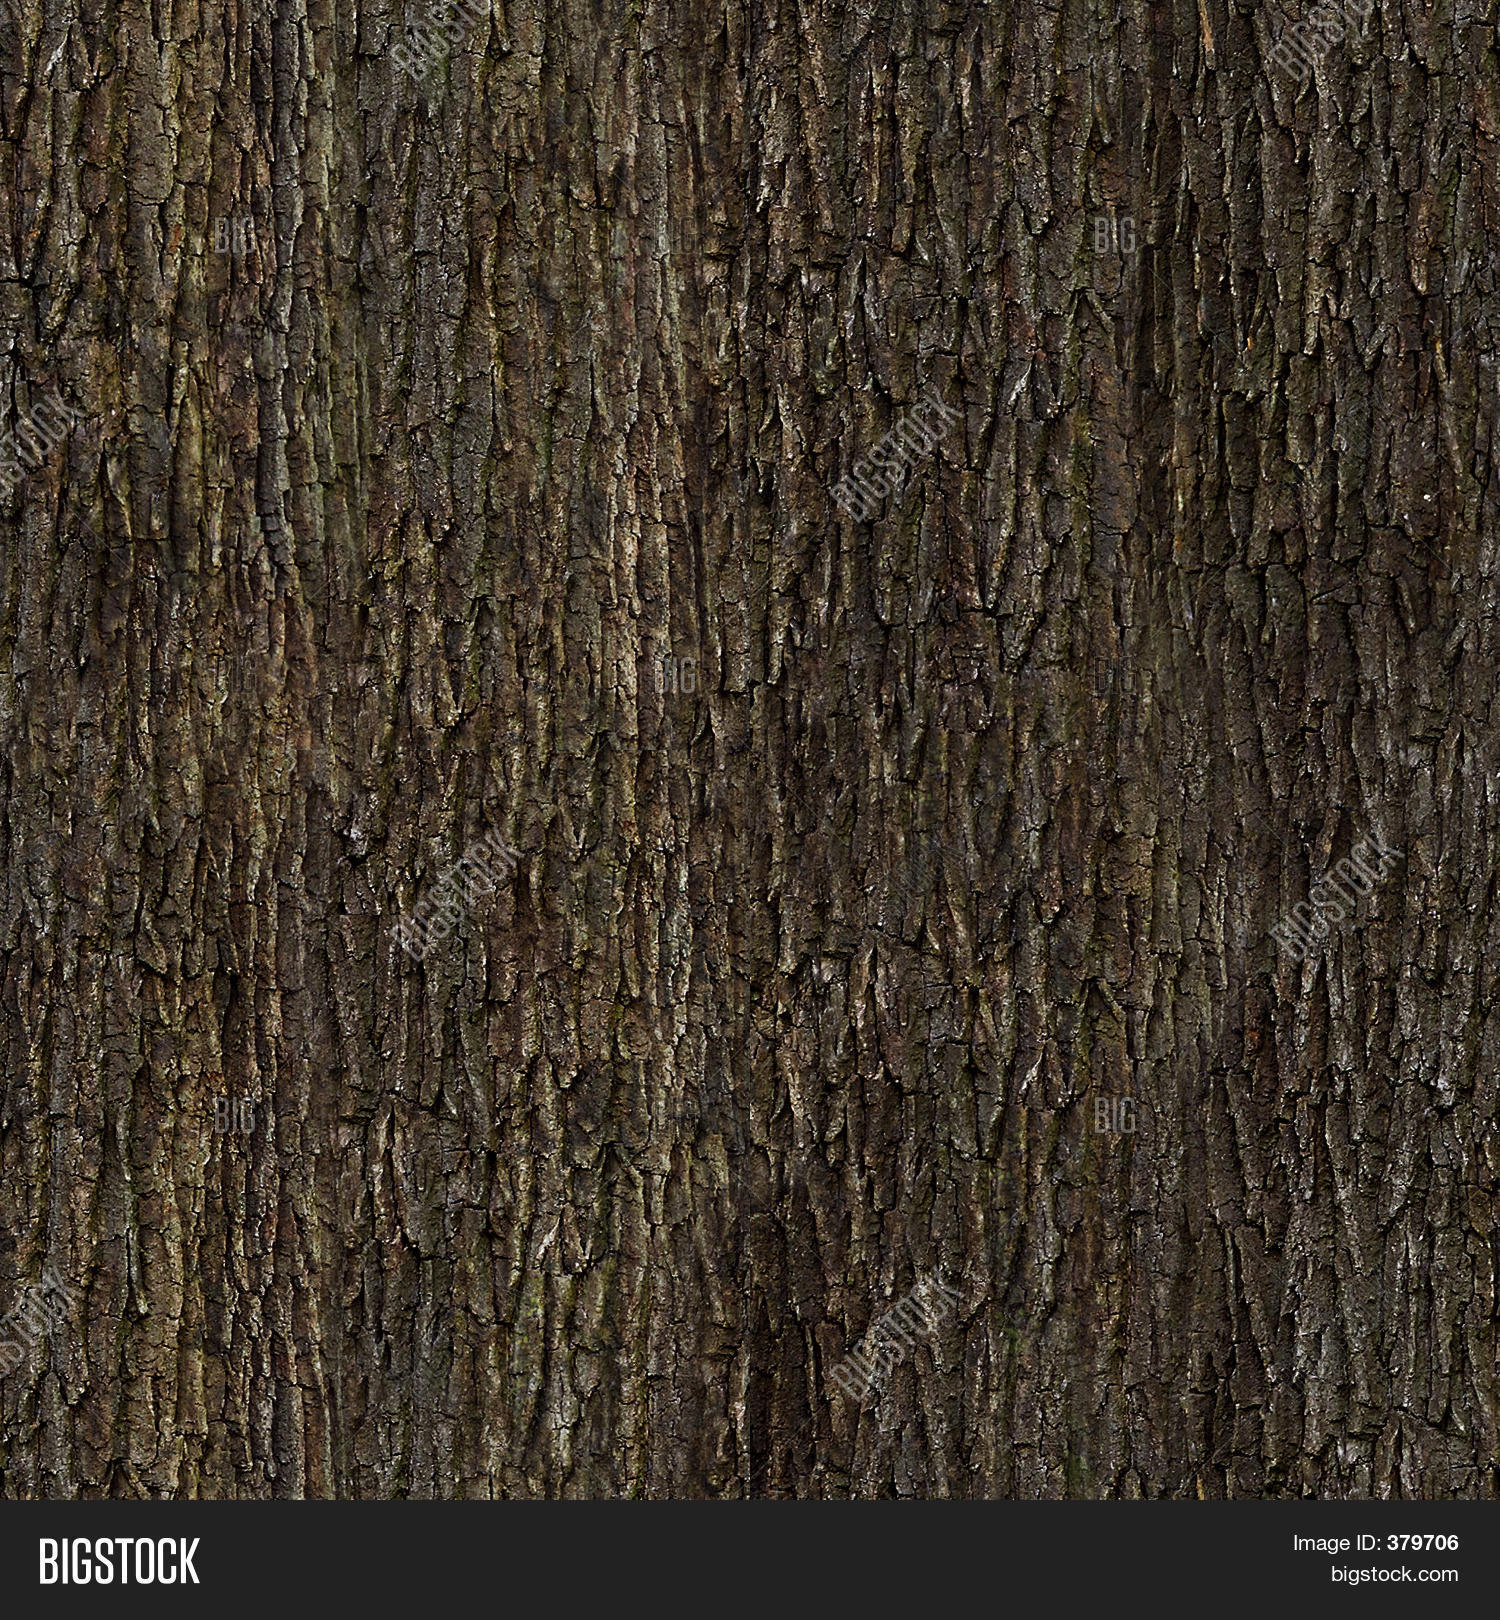 Oak Bark Texture Image & Photo | Bigstock